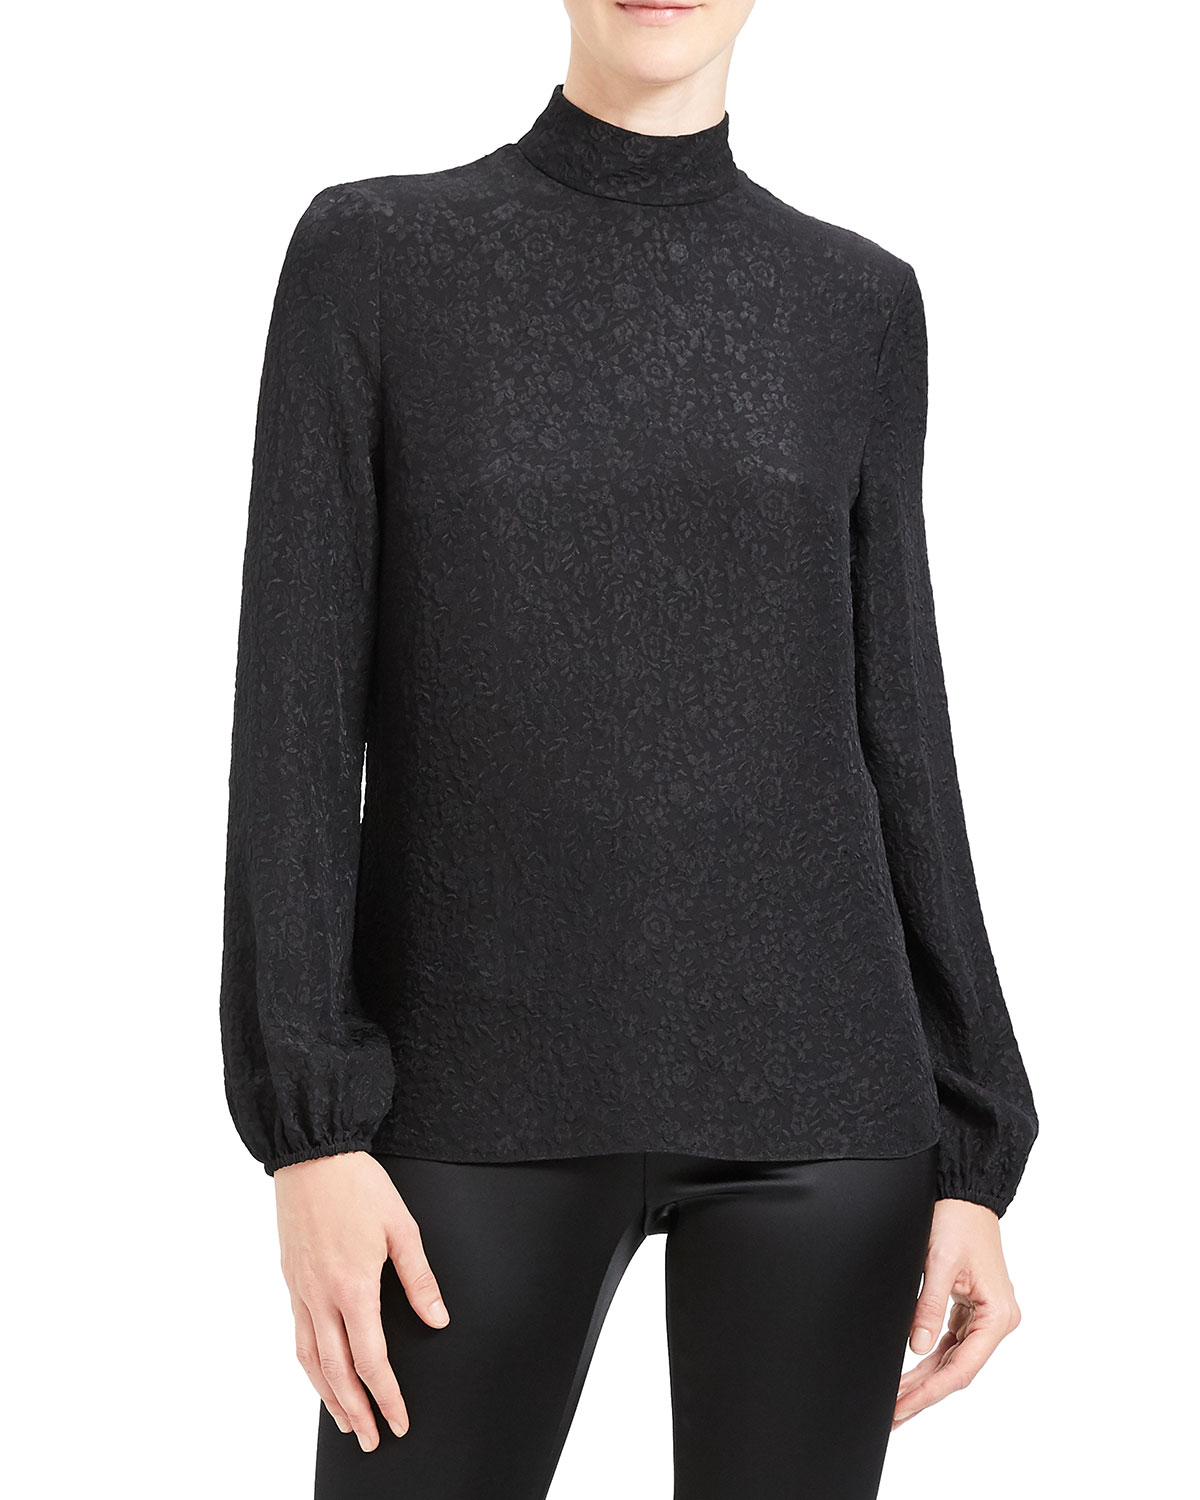 Theory Tops FLORAL JACQUARD MOCK NECK LONG-SLEEVE SILK TOP